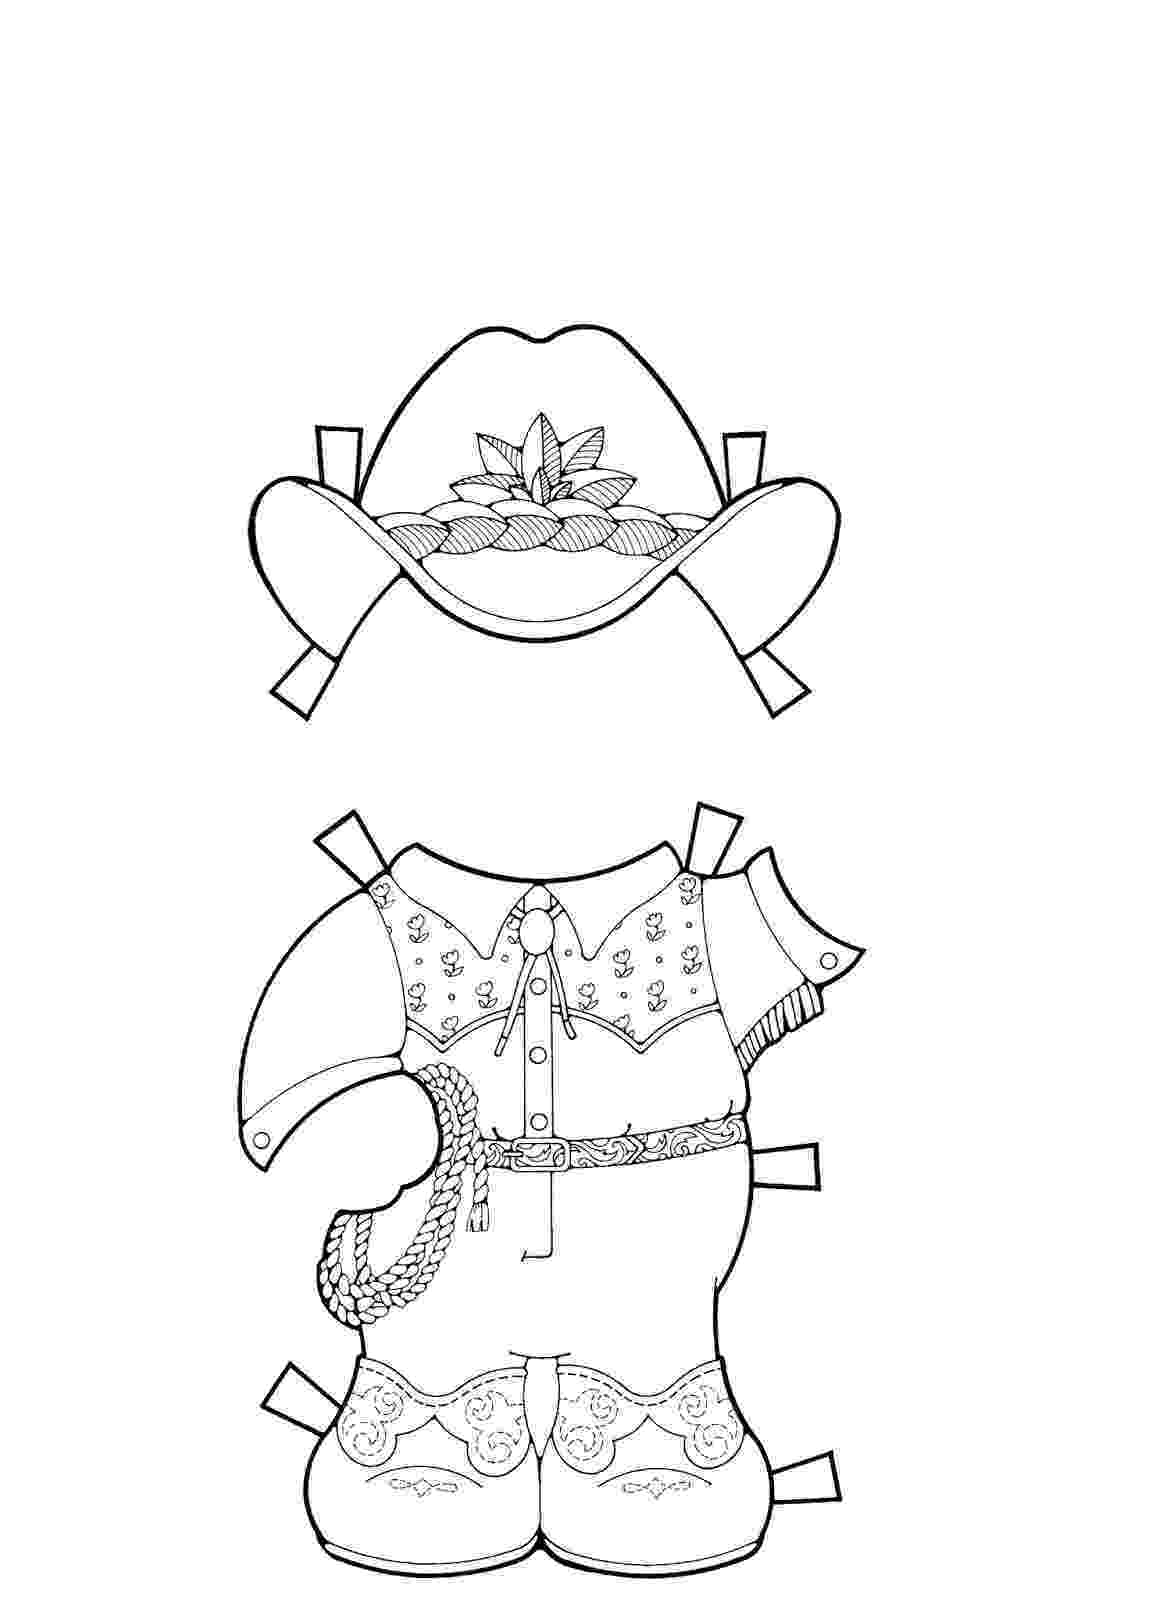 teddy bear paper dolls mostly paper dolls too time for cowboys huggs and bear dolls paper teddy